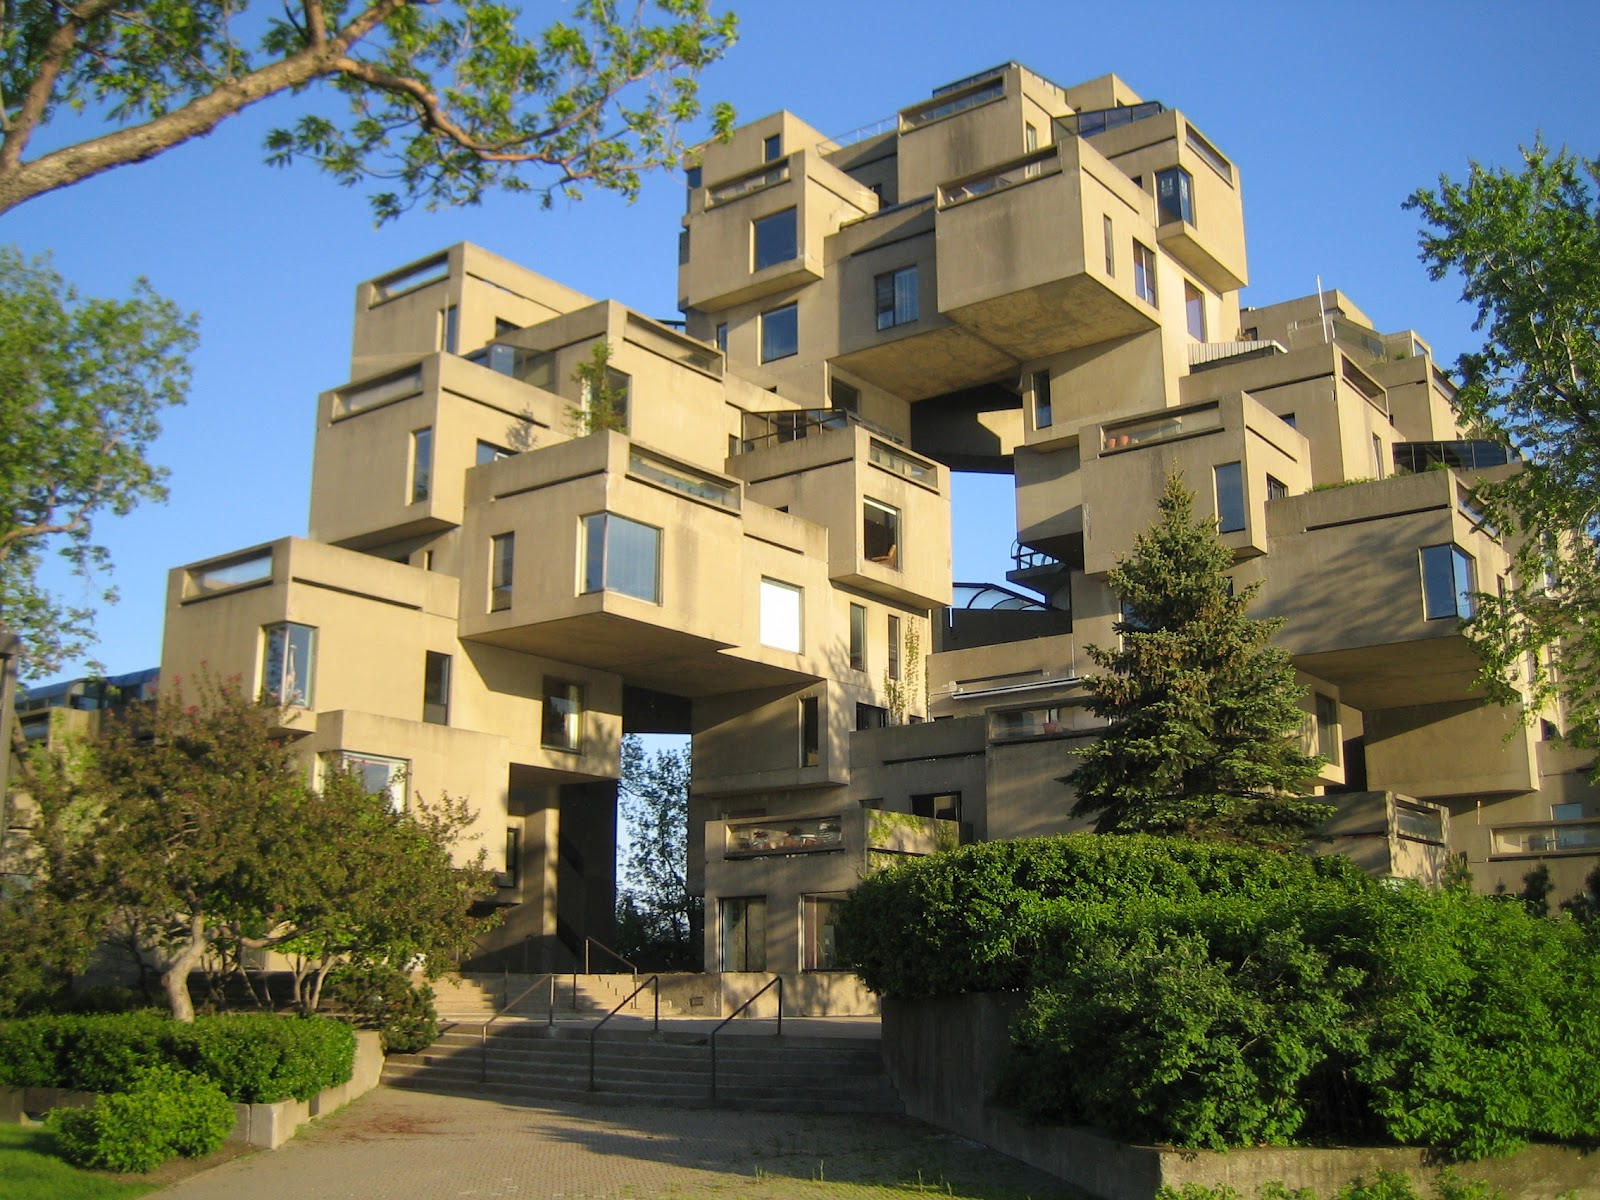 Habitat 67 3 by moshe safdie cube modern architecture for Residential pictures